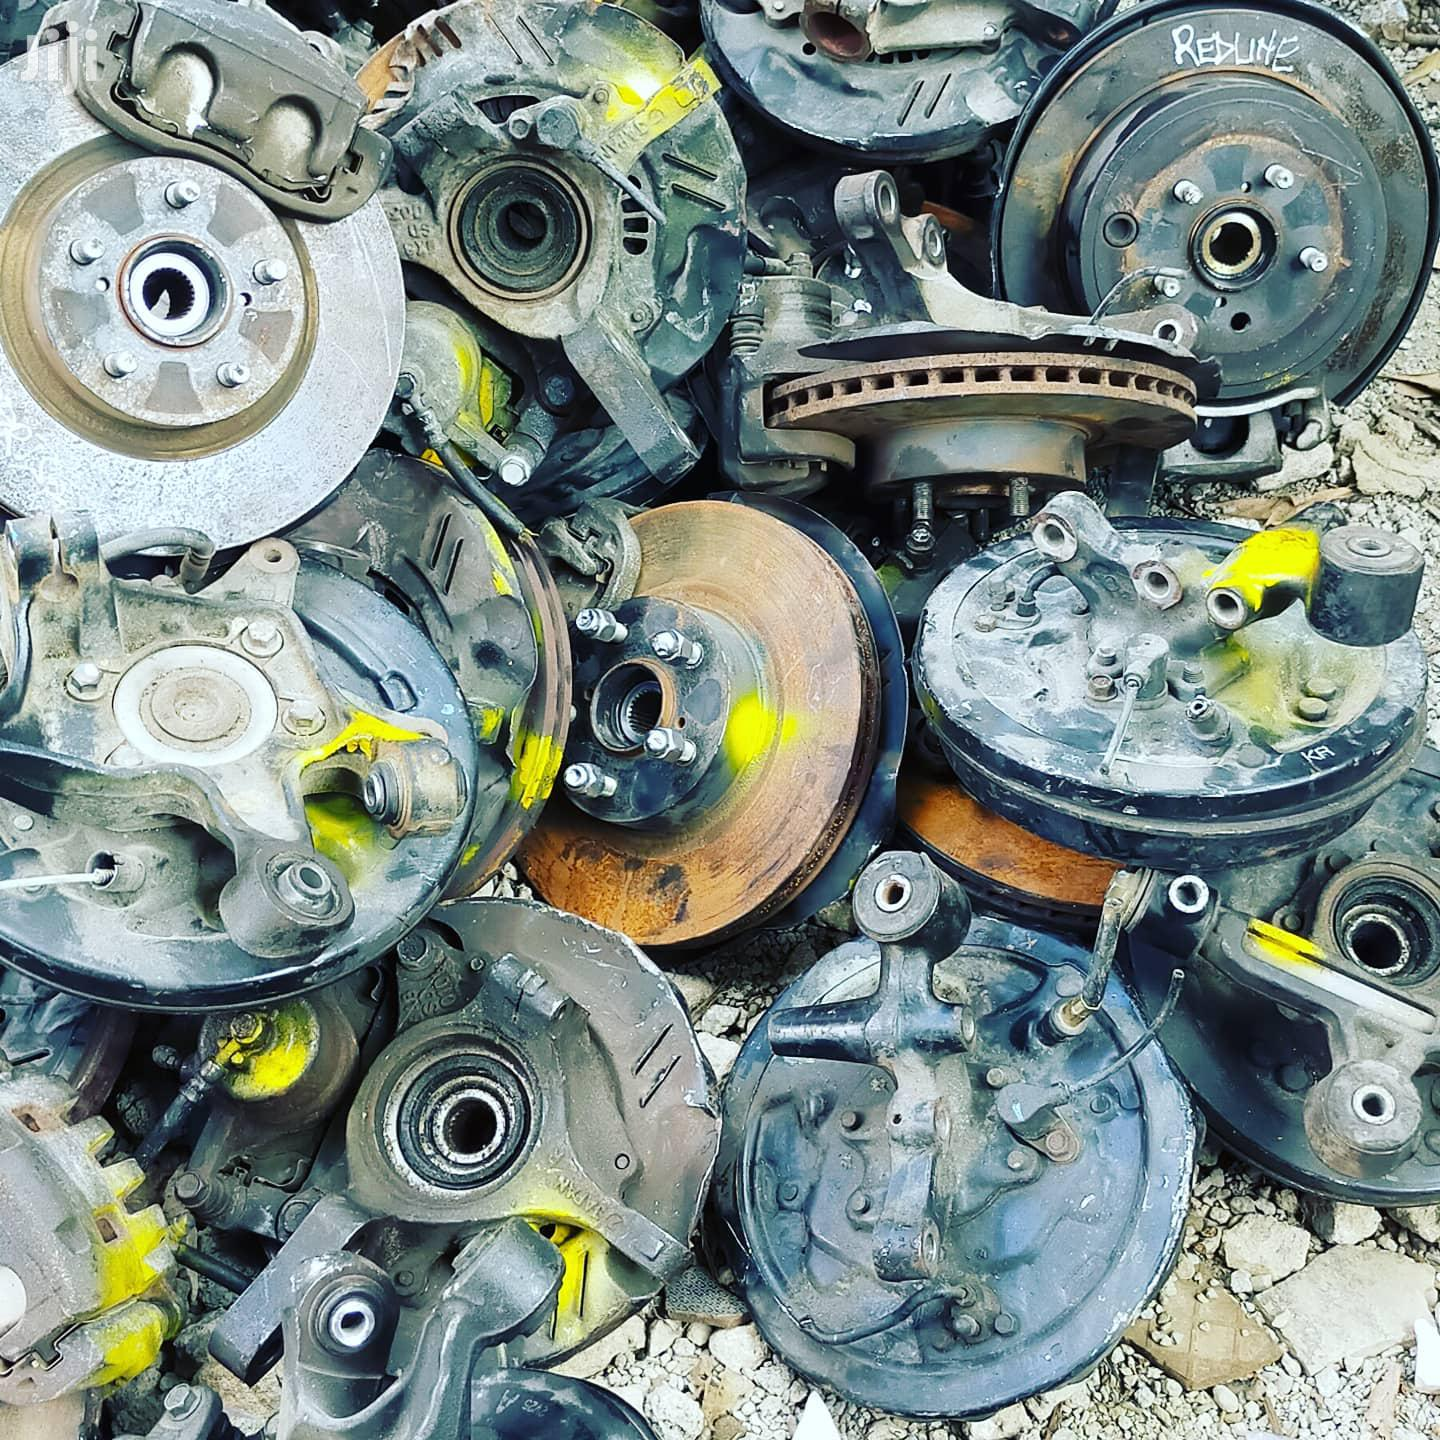 Subaru Spare Parts,Disks,Hubs,Racks,Shafts | Vehicle Parts & Accessories for sale in Langata, Nairobi, Kenya